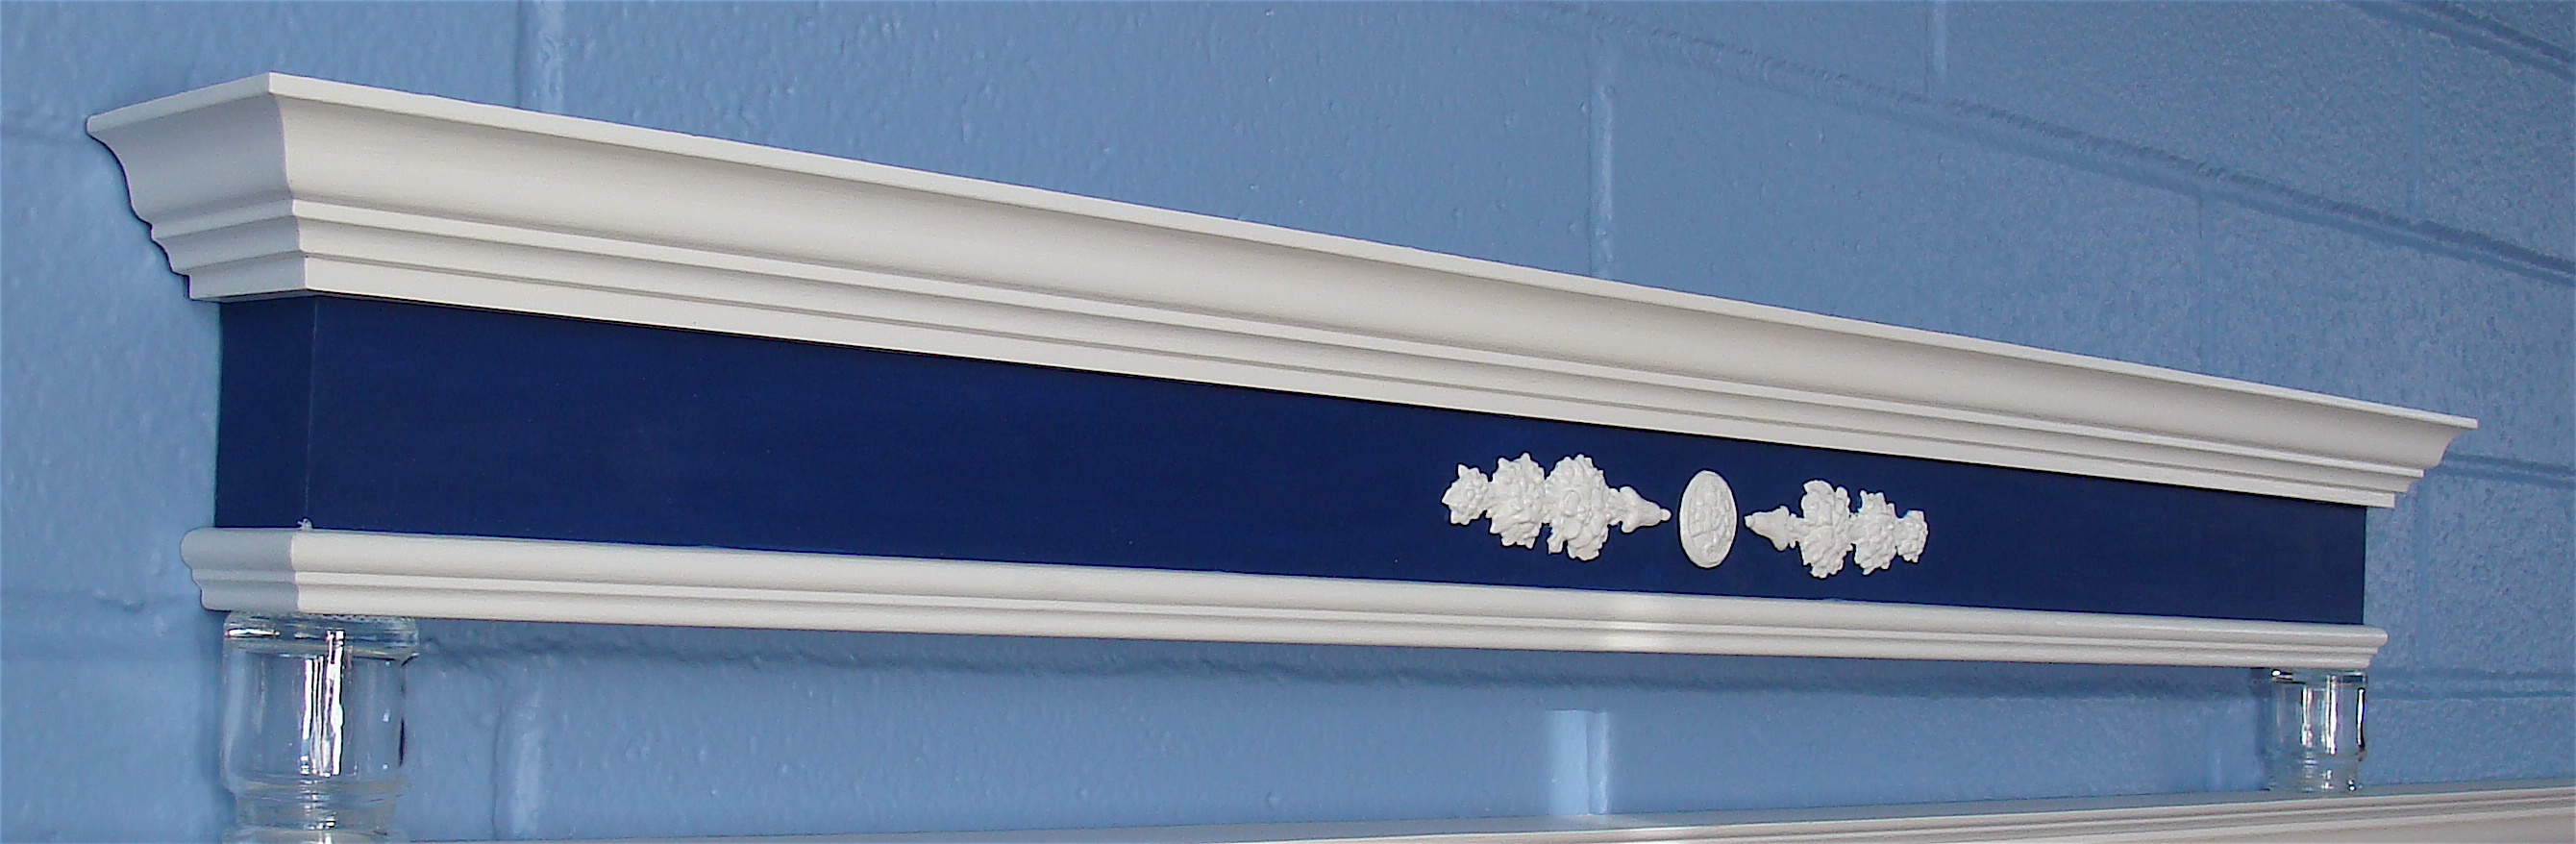 Before & After: Valance Box Frieze Painted Medium and Dark Cameo ...